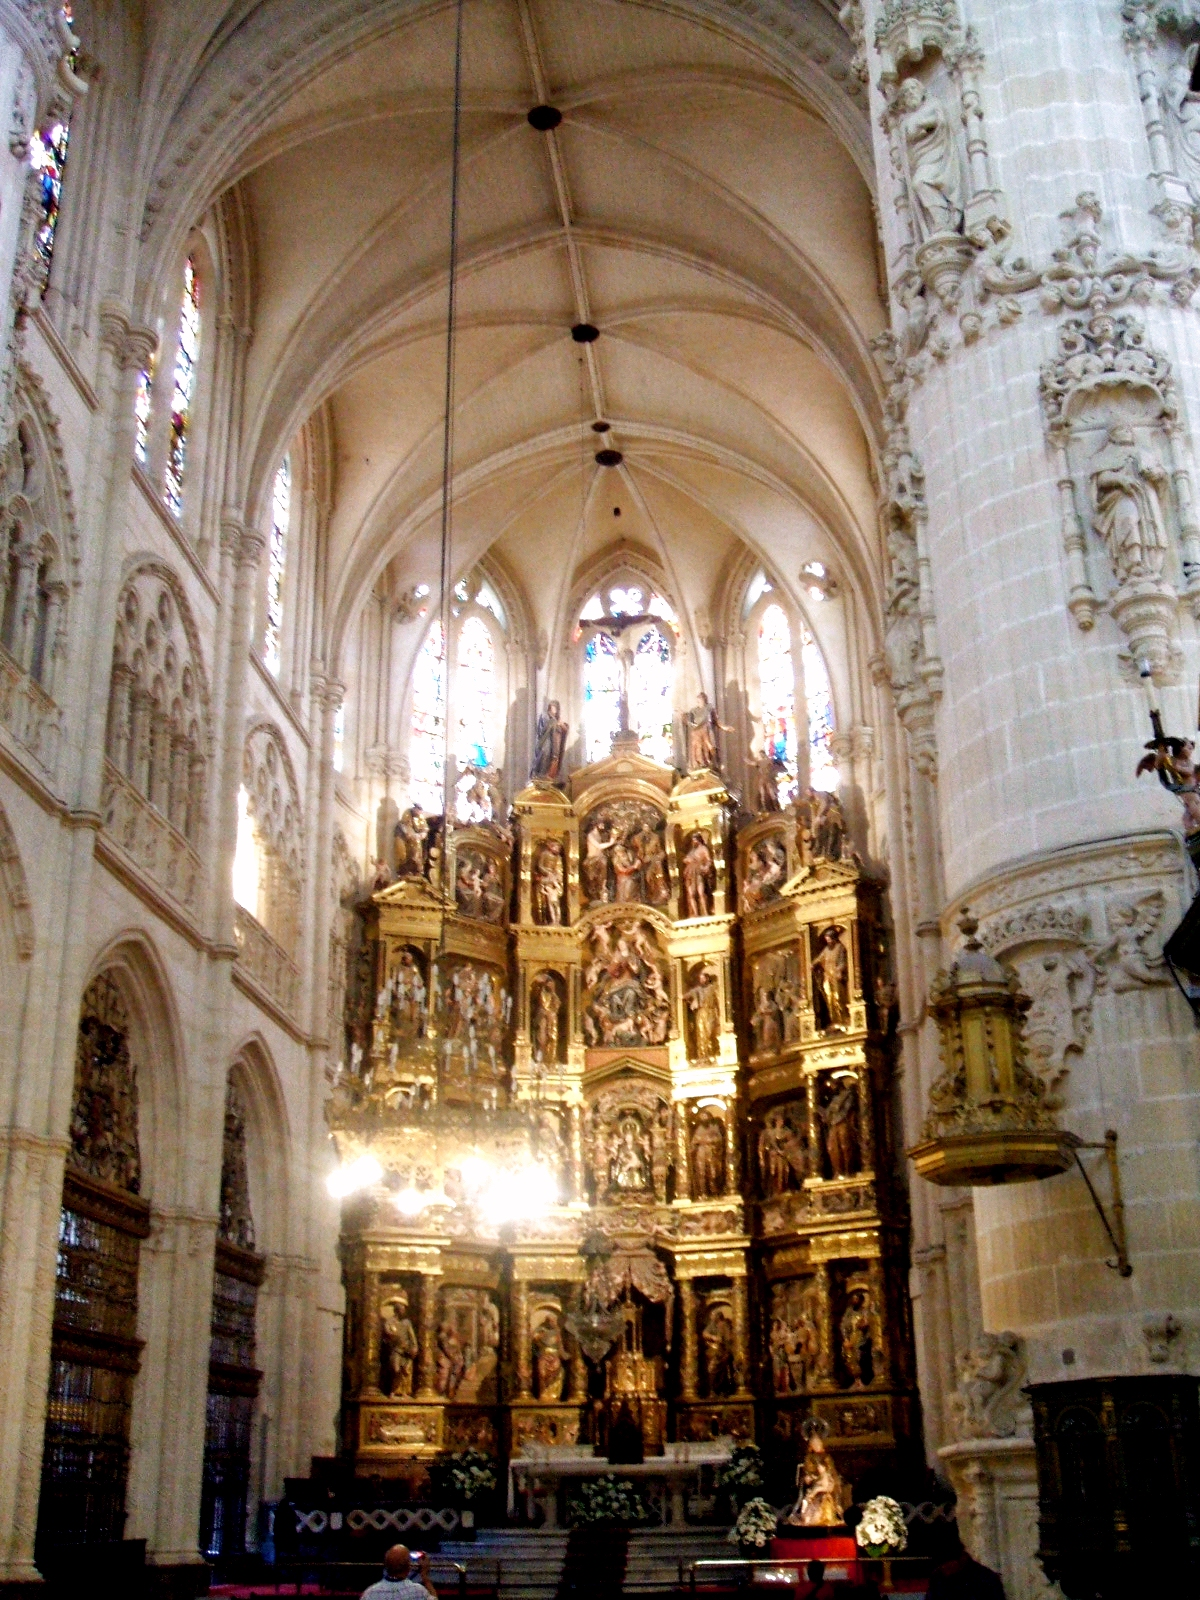 Burgos cathedral historical facts and pictures the for Imagenes de arquitectura